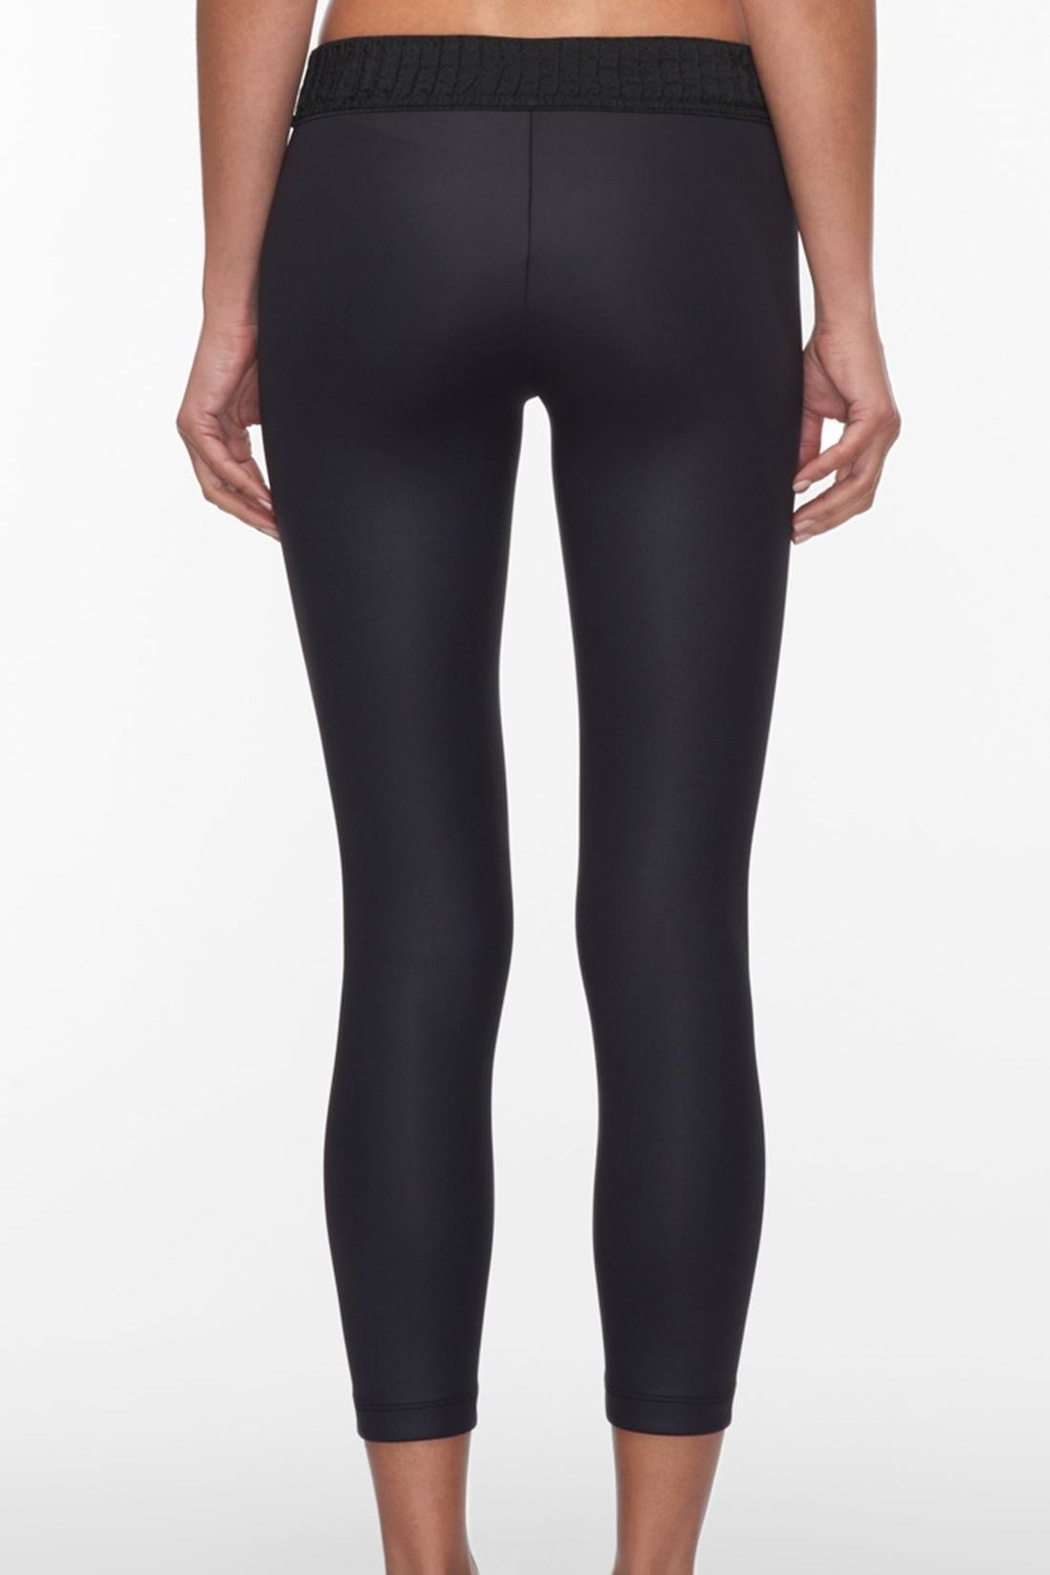 KORAL Wired Cropped Legging - Side Cropped Image